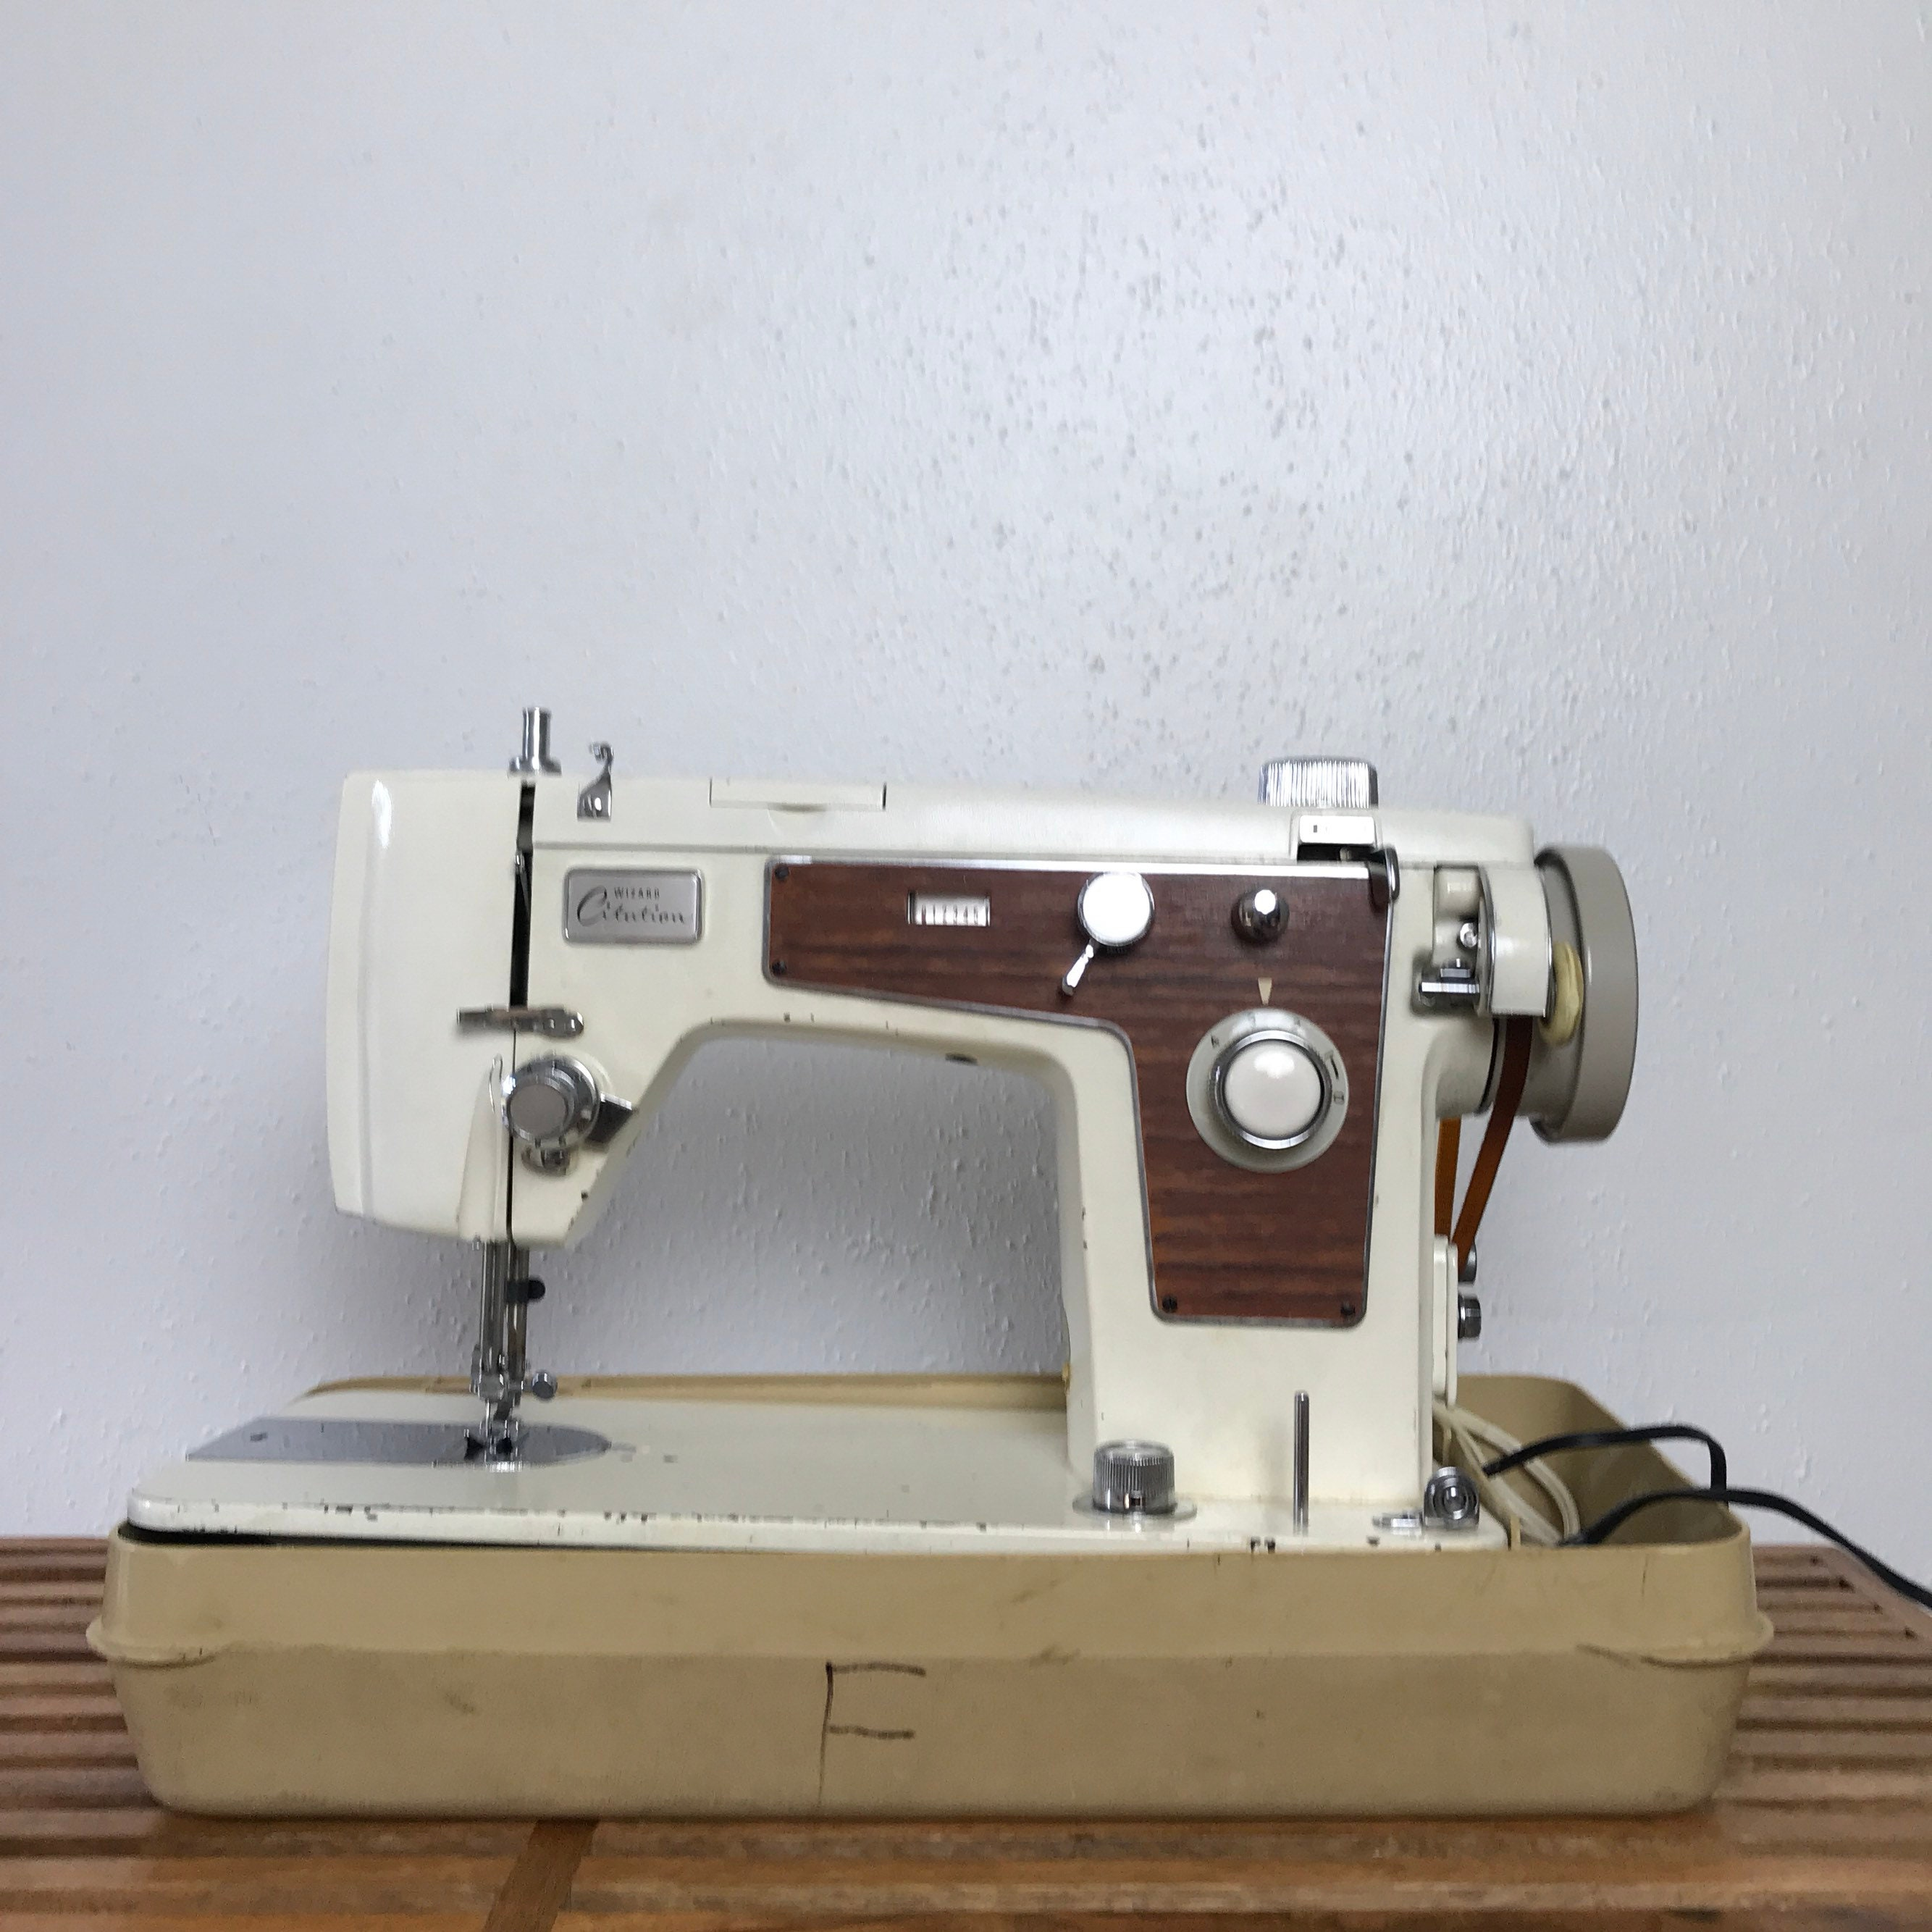 Brother Wizard Sewing Machine / Made In Japan Vintage Sewing Machine /  Portable Sewing Machine with Travel Case / Wizard Citation Sewing Mac